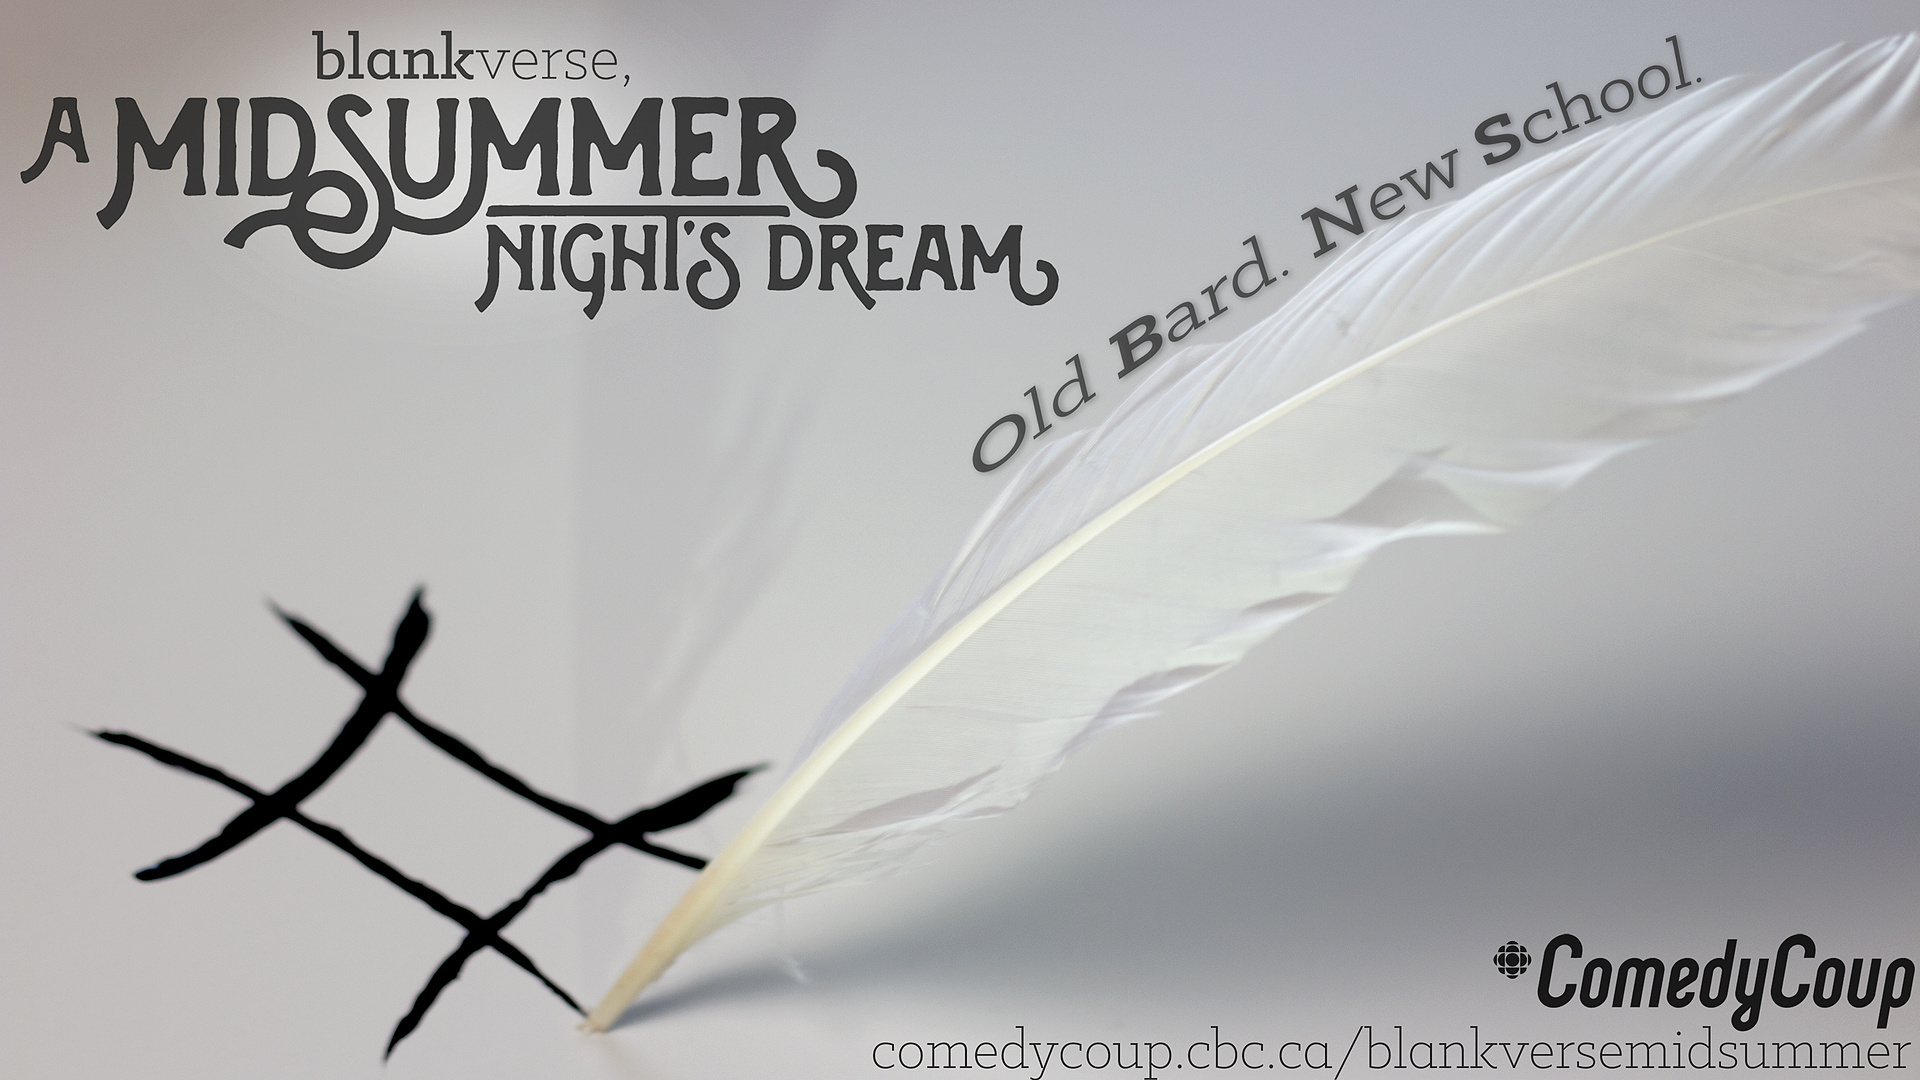 Week 4 Key It: Poster B Blank Verse: A Midsummer Night's Dream